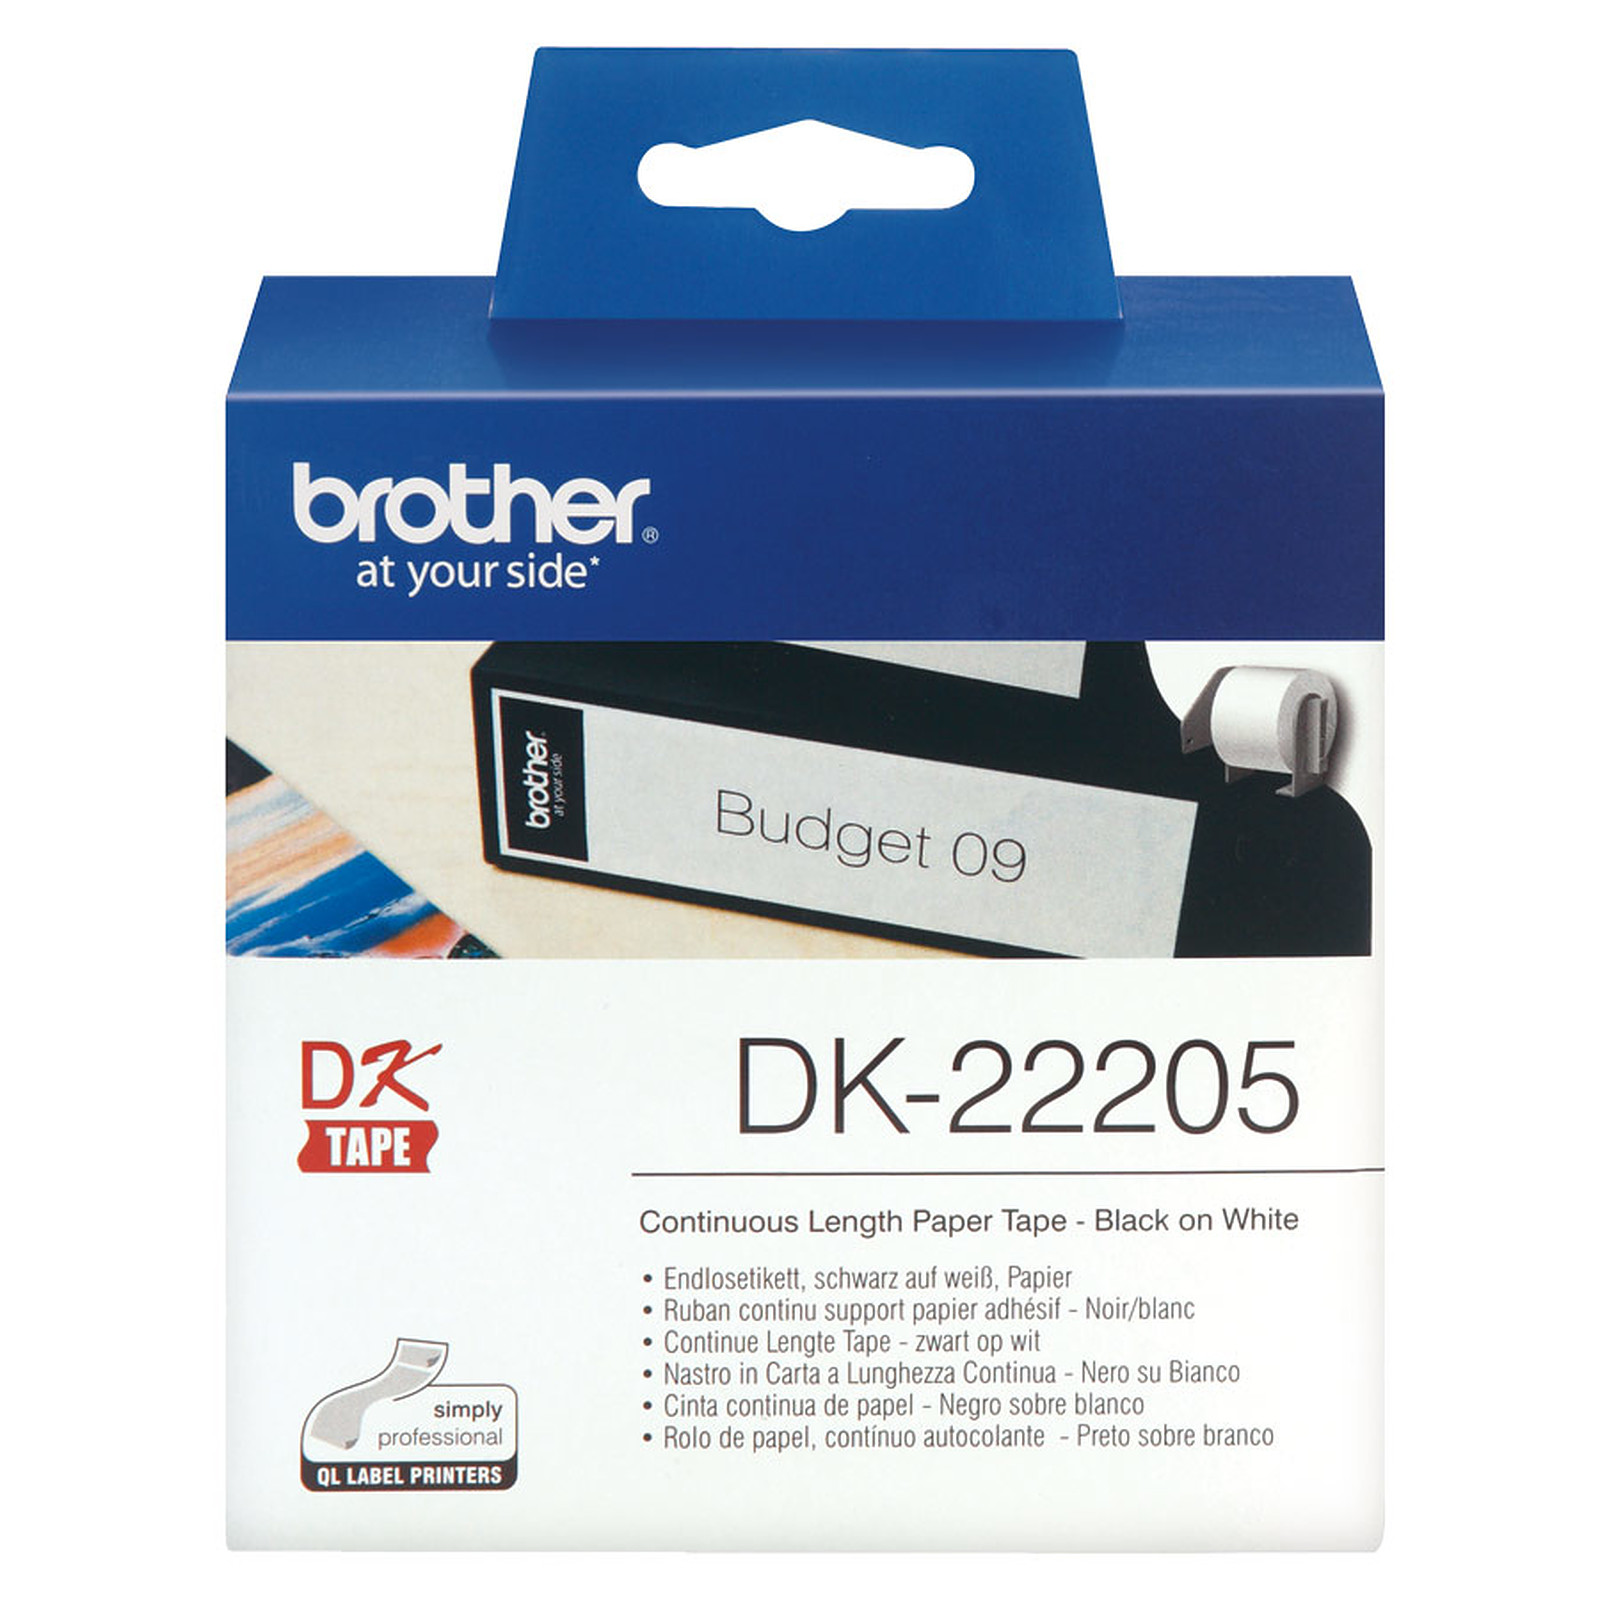 Ruban de papier continu noir sur blanc DK-22205 Brother Original, largeur 62 mm, longueur 30,48 m, Windows et Linux, Informatique Réunion 974